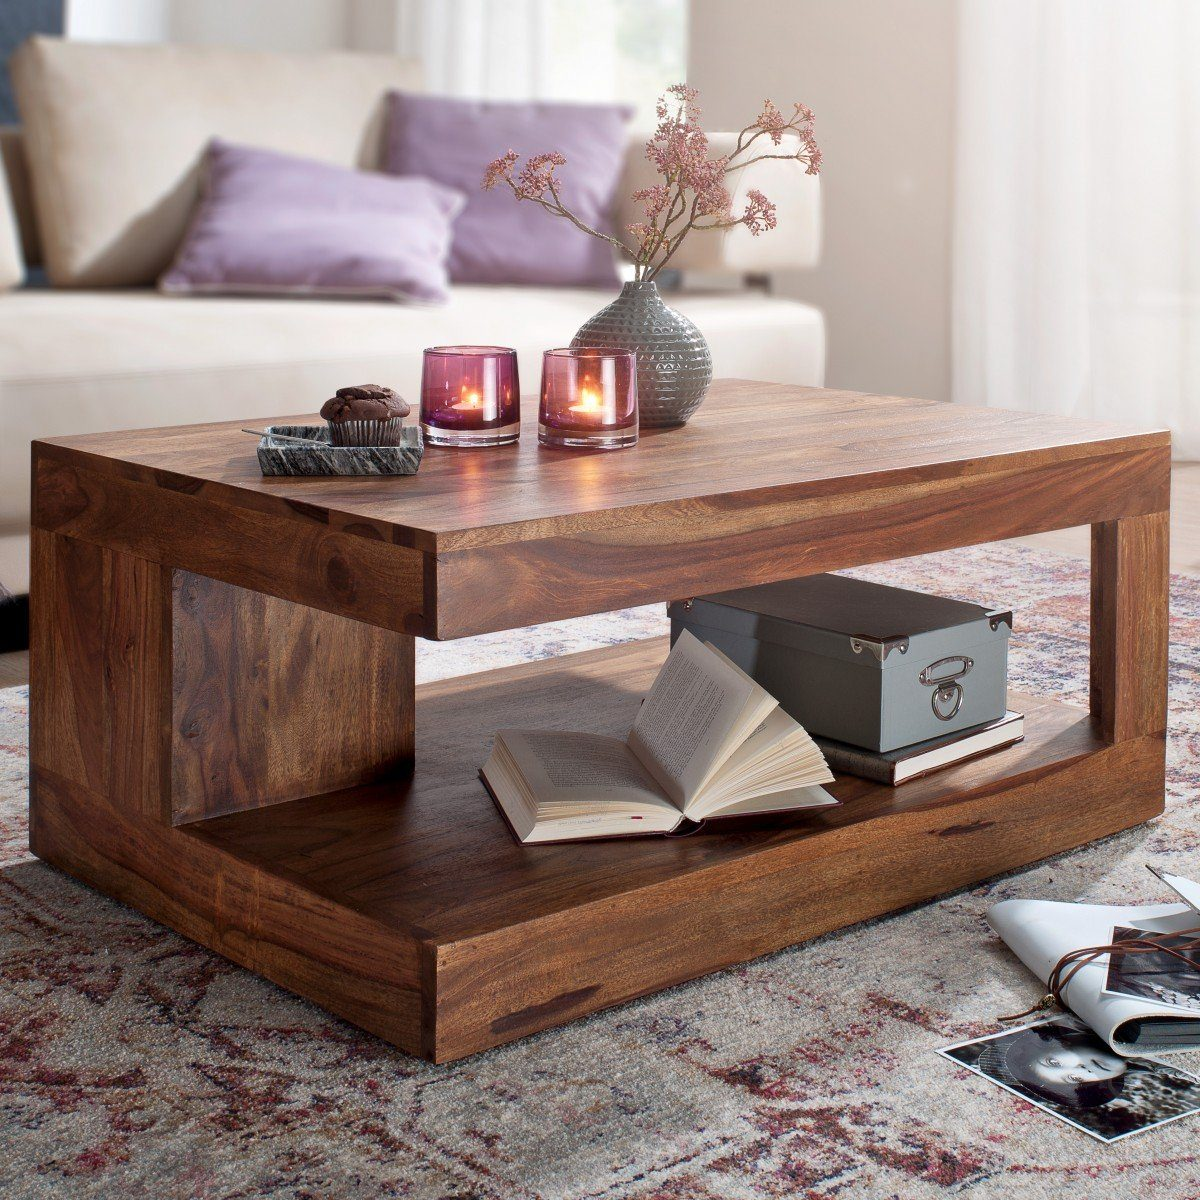 Prime Solid Wood Aspaki Centre Table Home Interior And Landscaping Oversignezvosmurscom